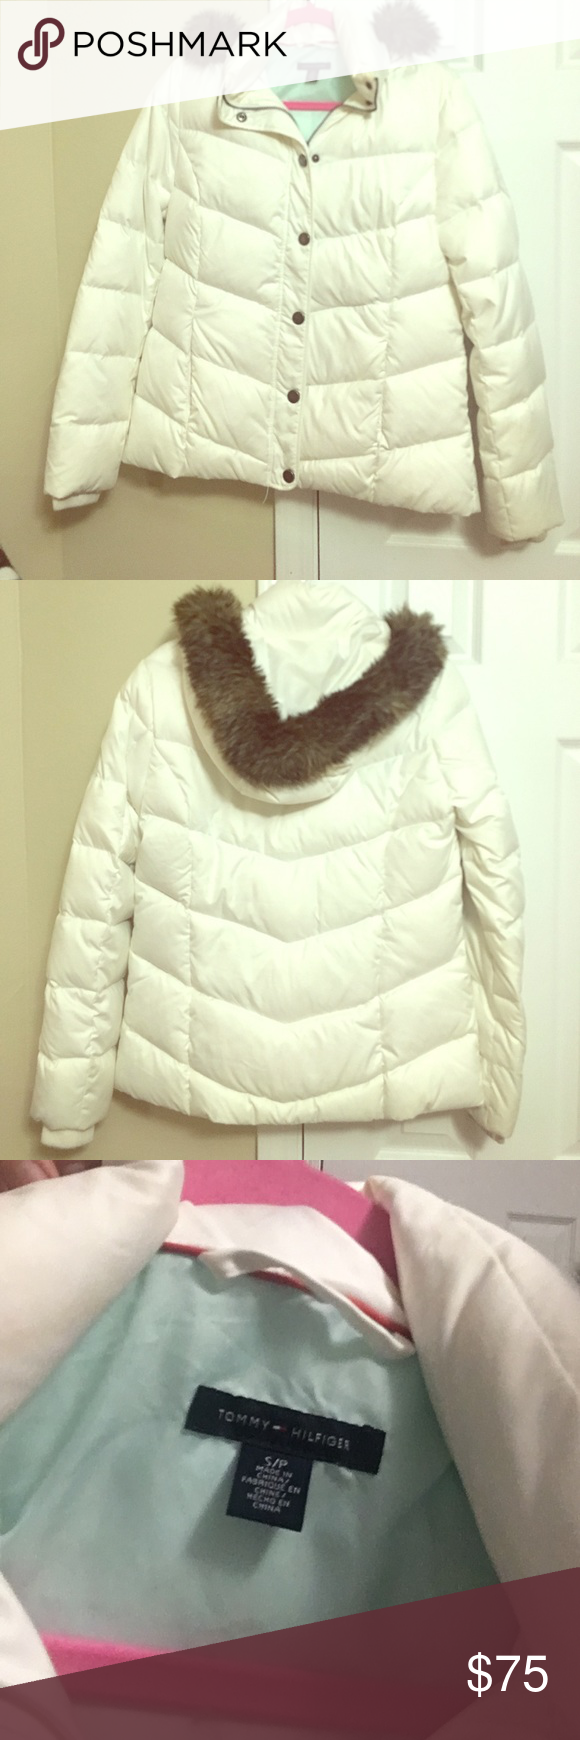 White Tommy Hilfiger jacket White warm Tommy Hilfiger jacket with hood Tommy Hilfiger Jackets & Coats Puffers